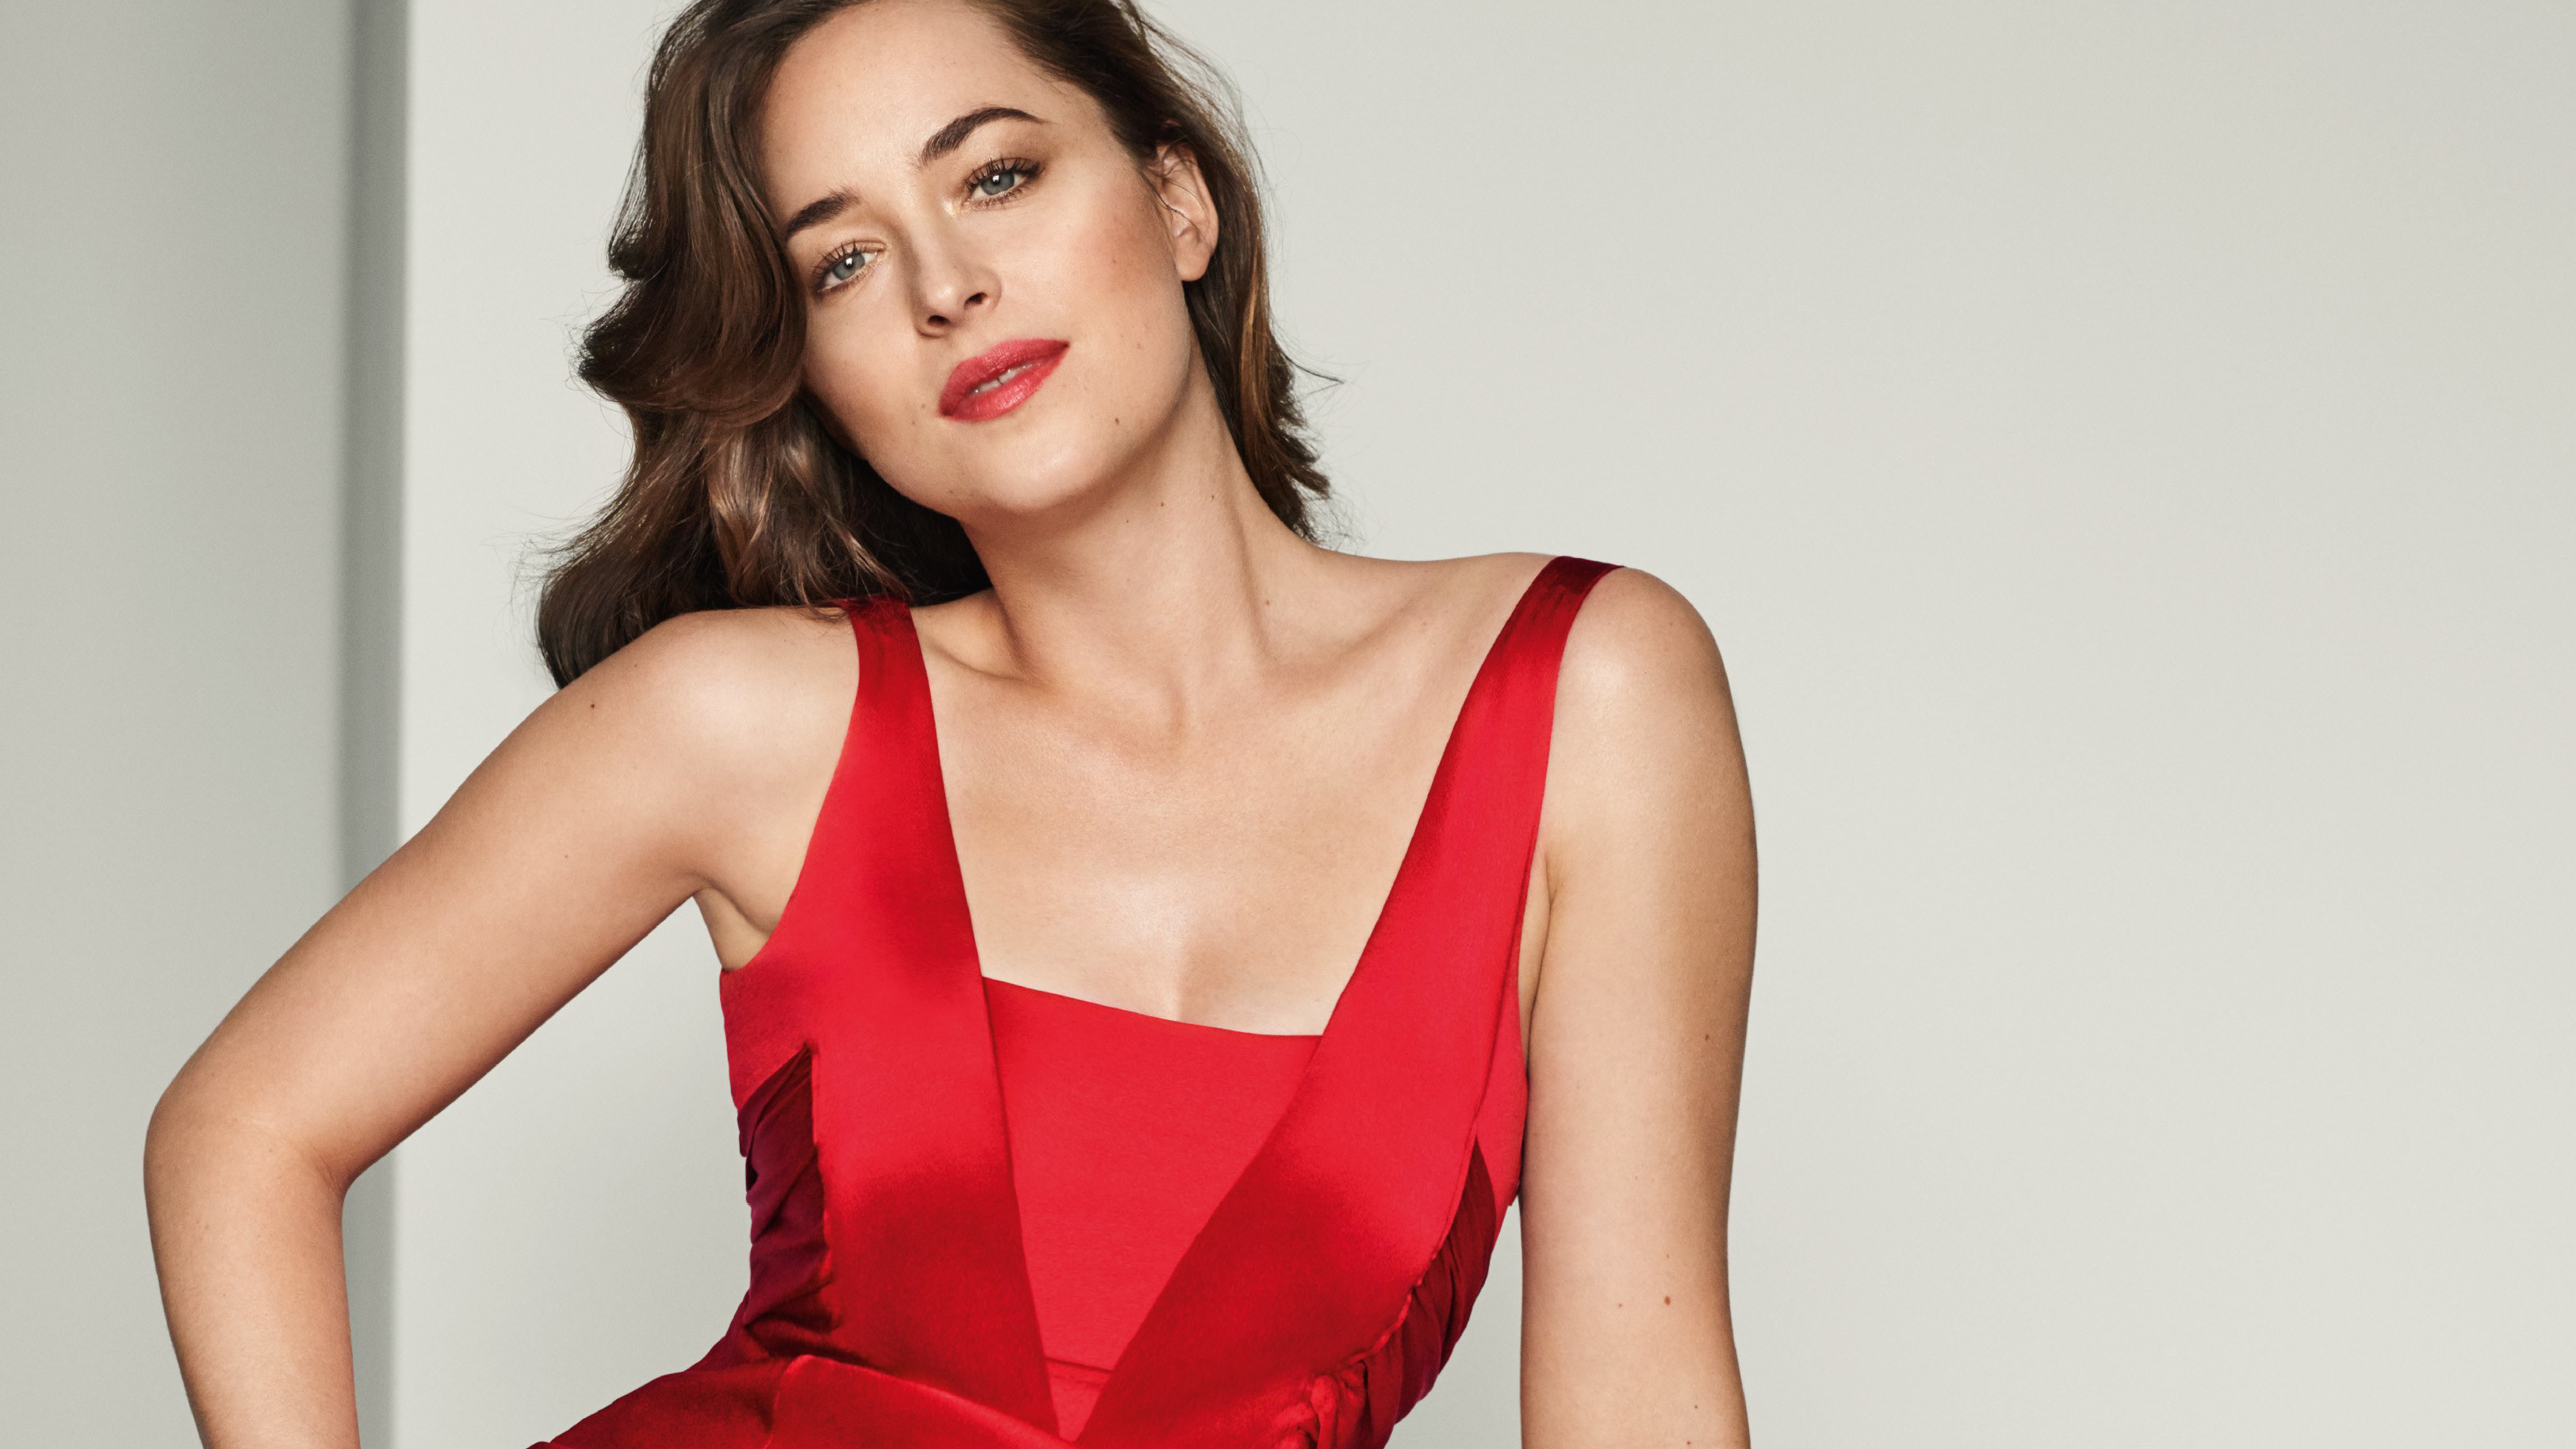 Dakota Johnson Vogue 2017 Wallpapers